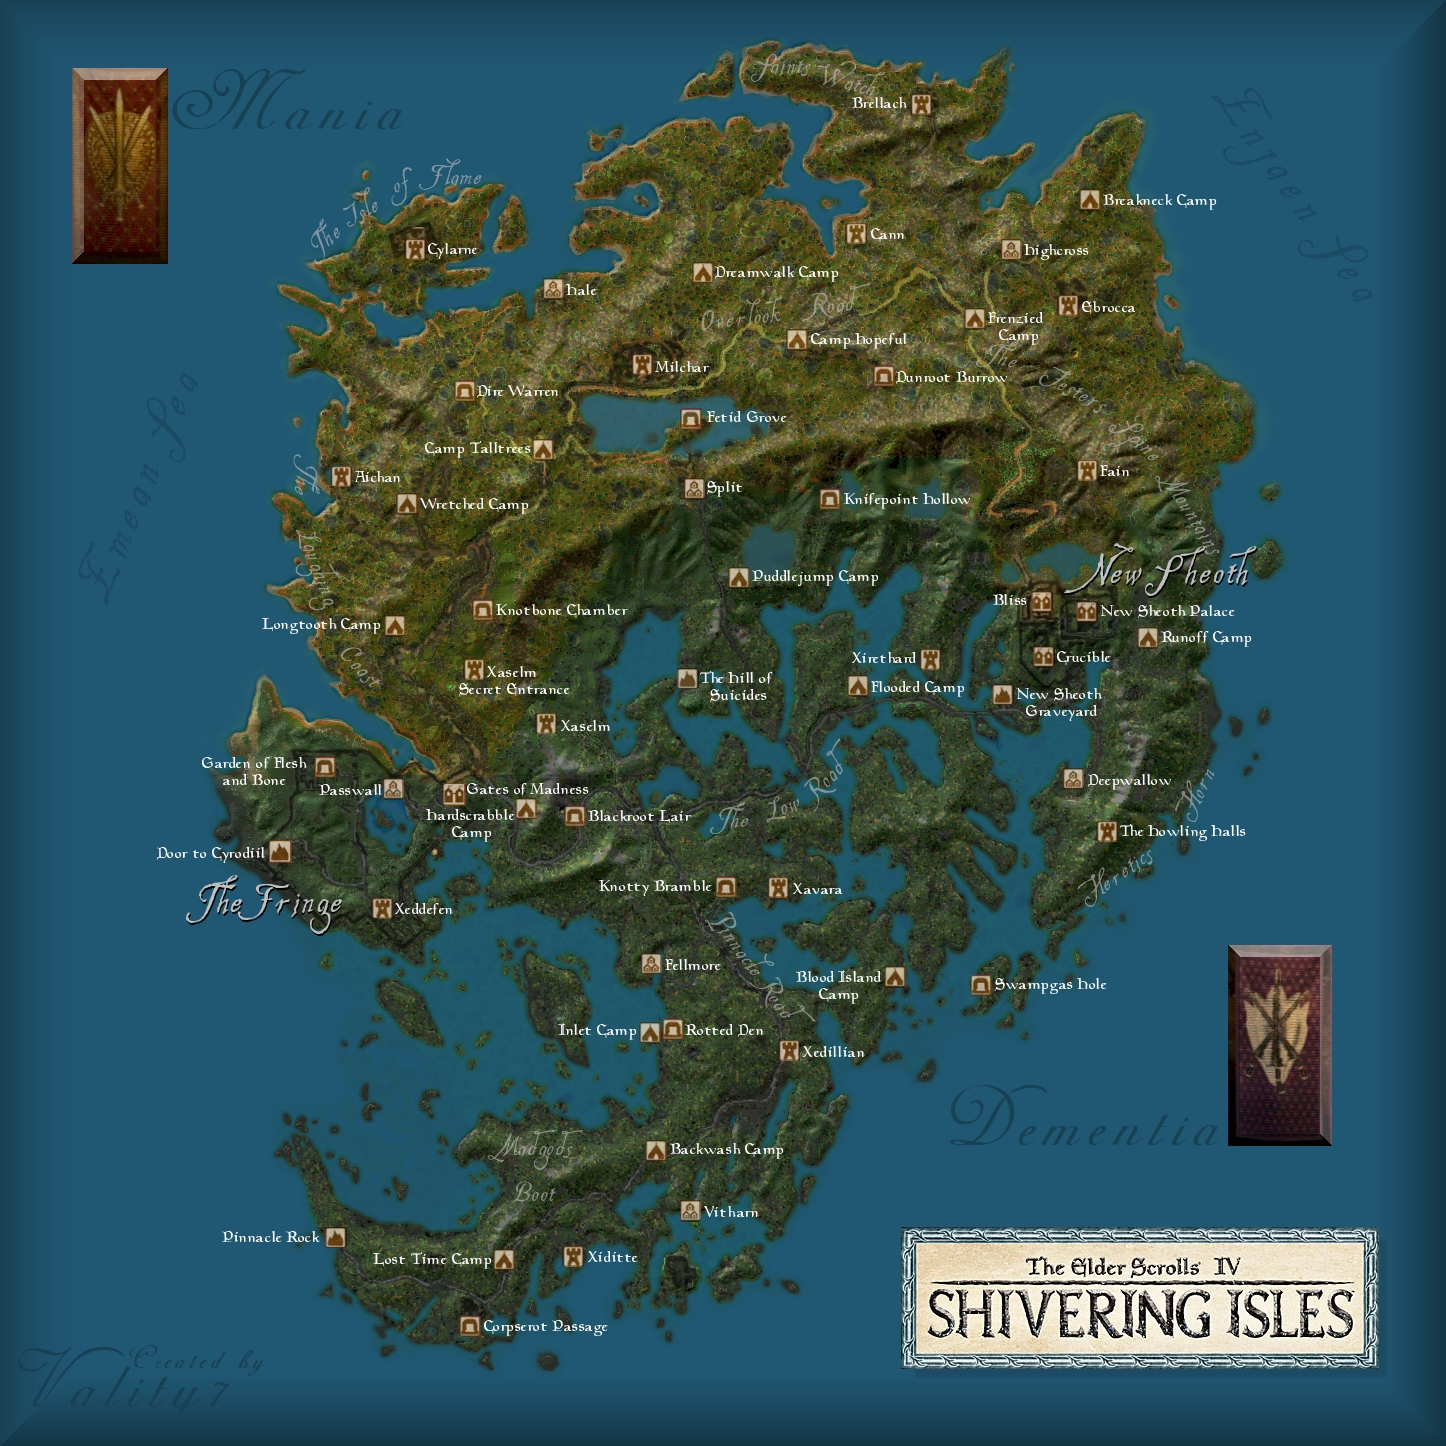 fallout 3 map size with Shivering Isles Map Vality7 on Fallout 4 Vs Fallout 3 Screenshot  parison Shows Massive Graphical Leap further File Moonbase Accelerator together with Spintires Free Download as well File FO3 Sandbag likewise Fallout Shelter Tips Tricks And Strategy Keep Your Dwellers Free Radiation.